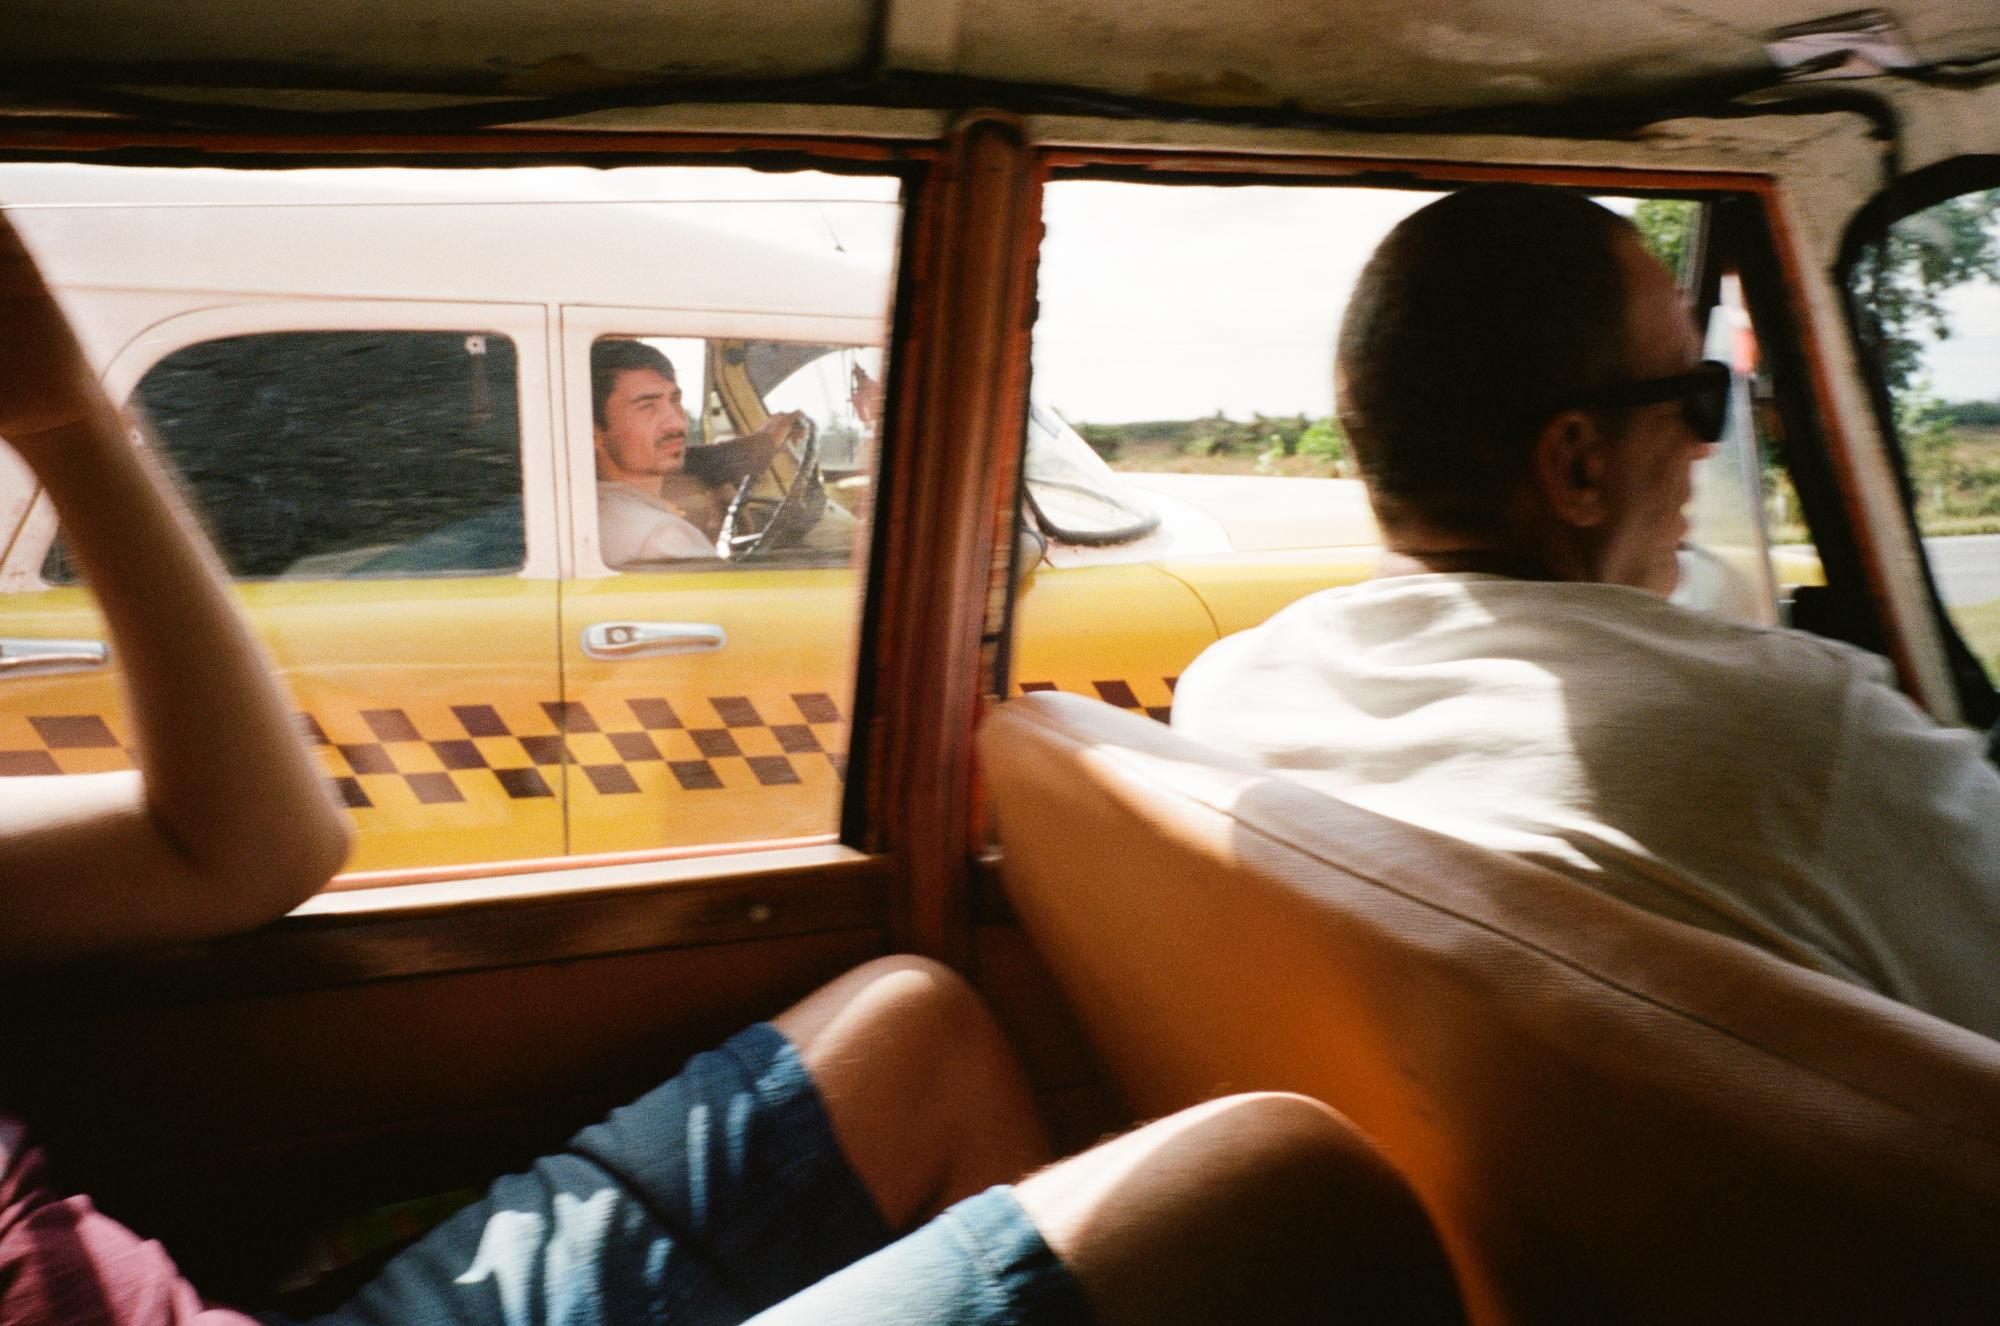 OUTSIDE HAVANA. Autopista Nacional (A4). Westward from Havana to Pinar del Rio. Two cabs full of tourists race each other. Shortly after this image, the two cars pulled close enough on the highway next to each other at full speed.